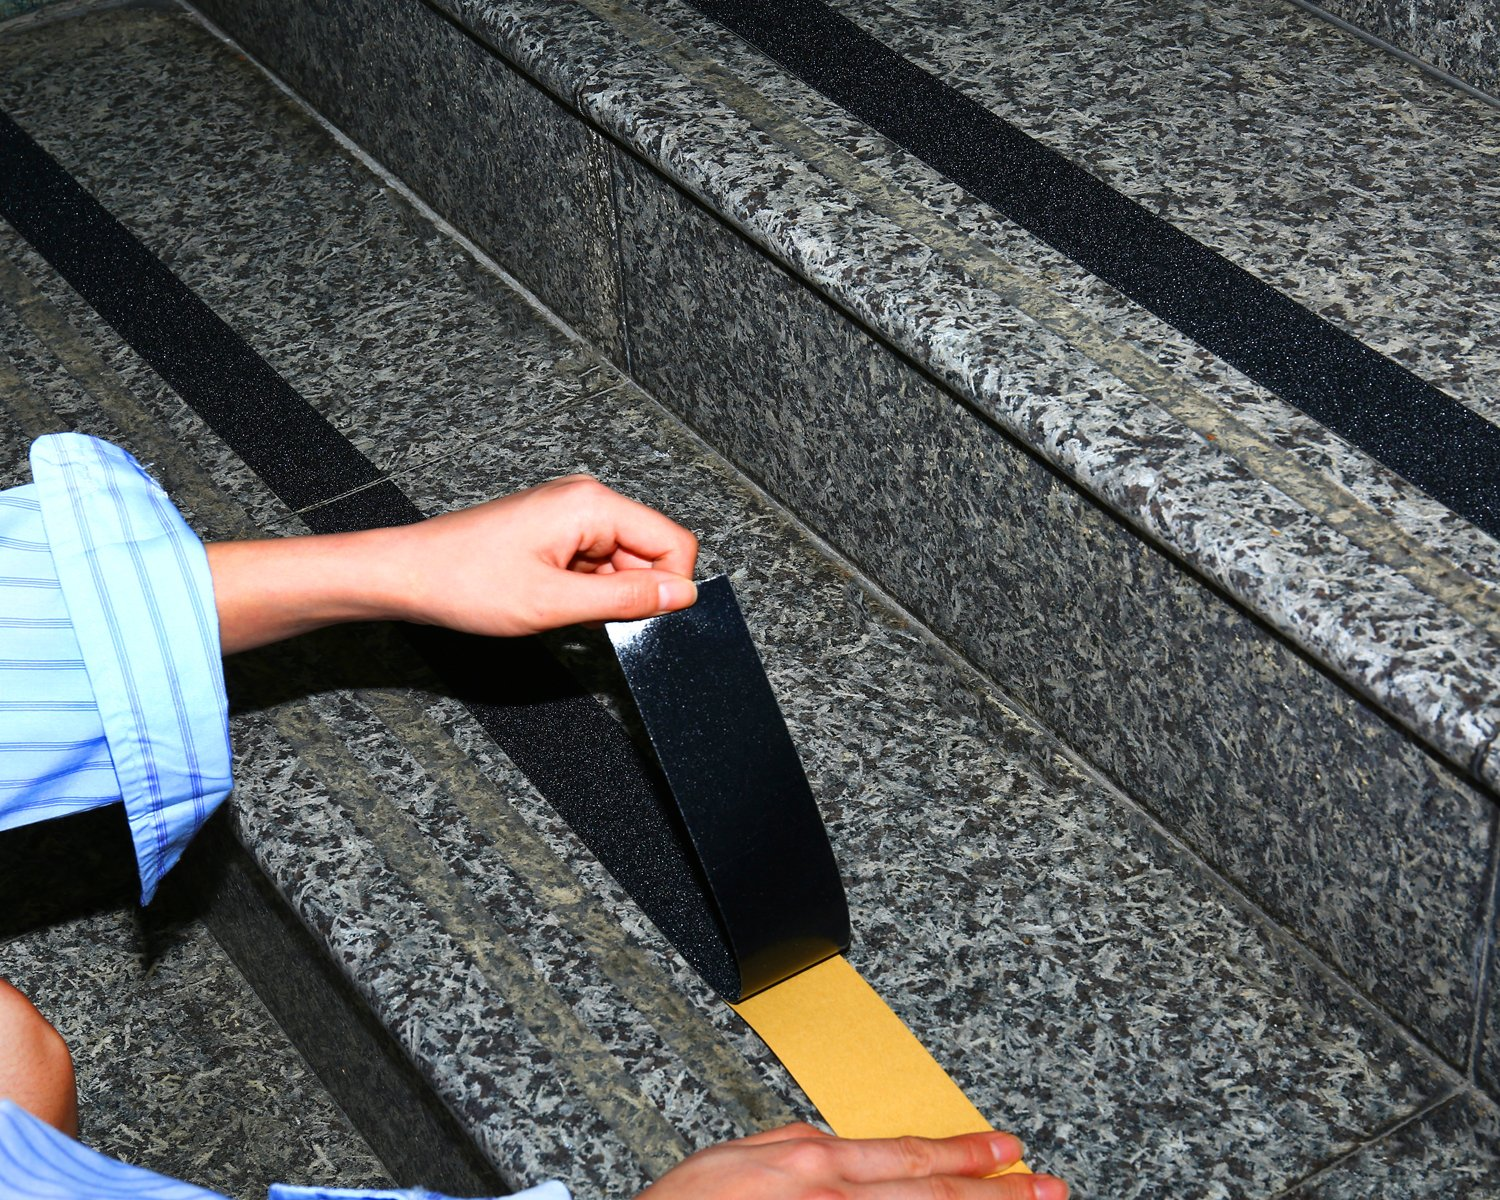 Anti Slip Tape - 2 Inch x 30 Foot High Traction Grip Tape 60 Grit for Stairs Indoor Outdoor (Black) by Cheerybond (Image #4)